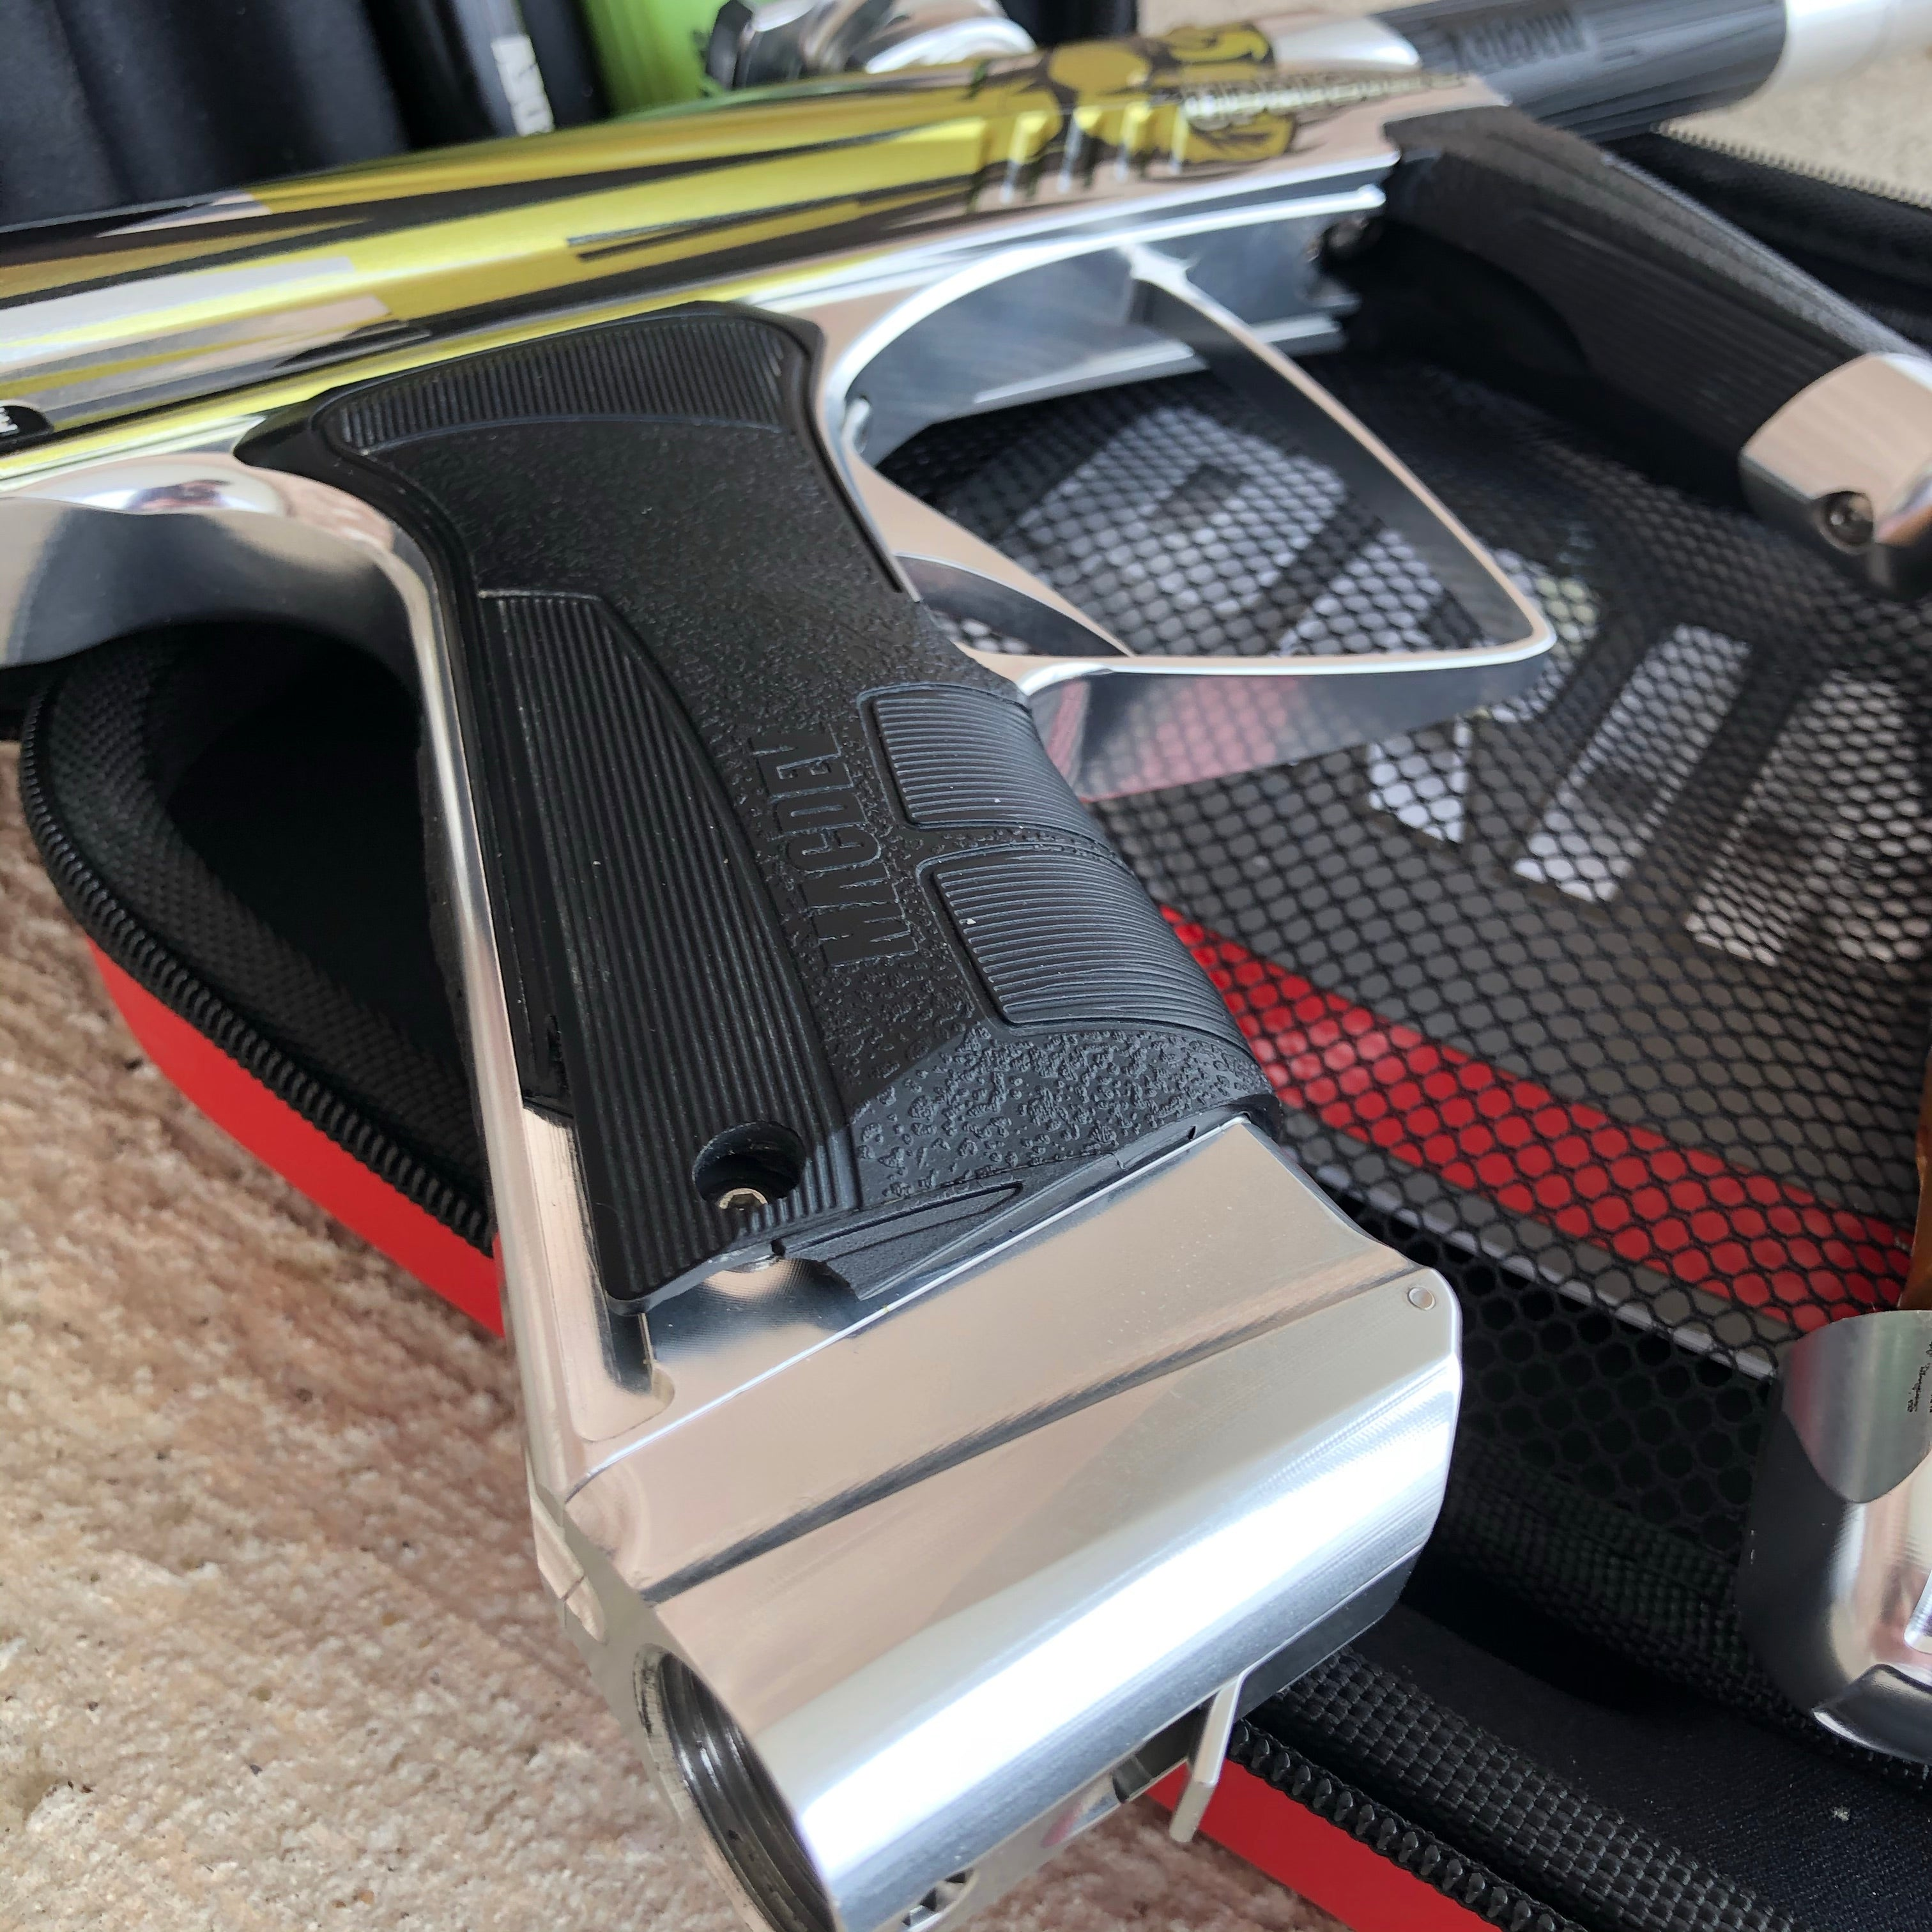 Used MacDev Prime Paintball Marker - Seattle Uprising Edition